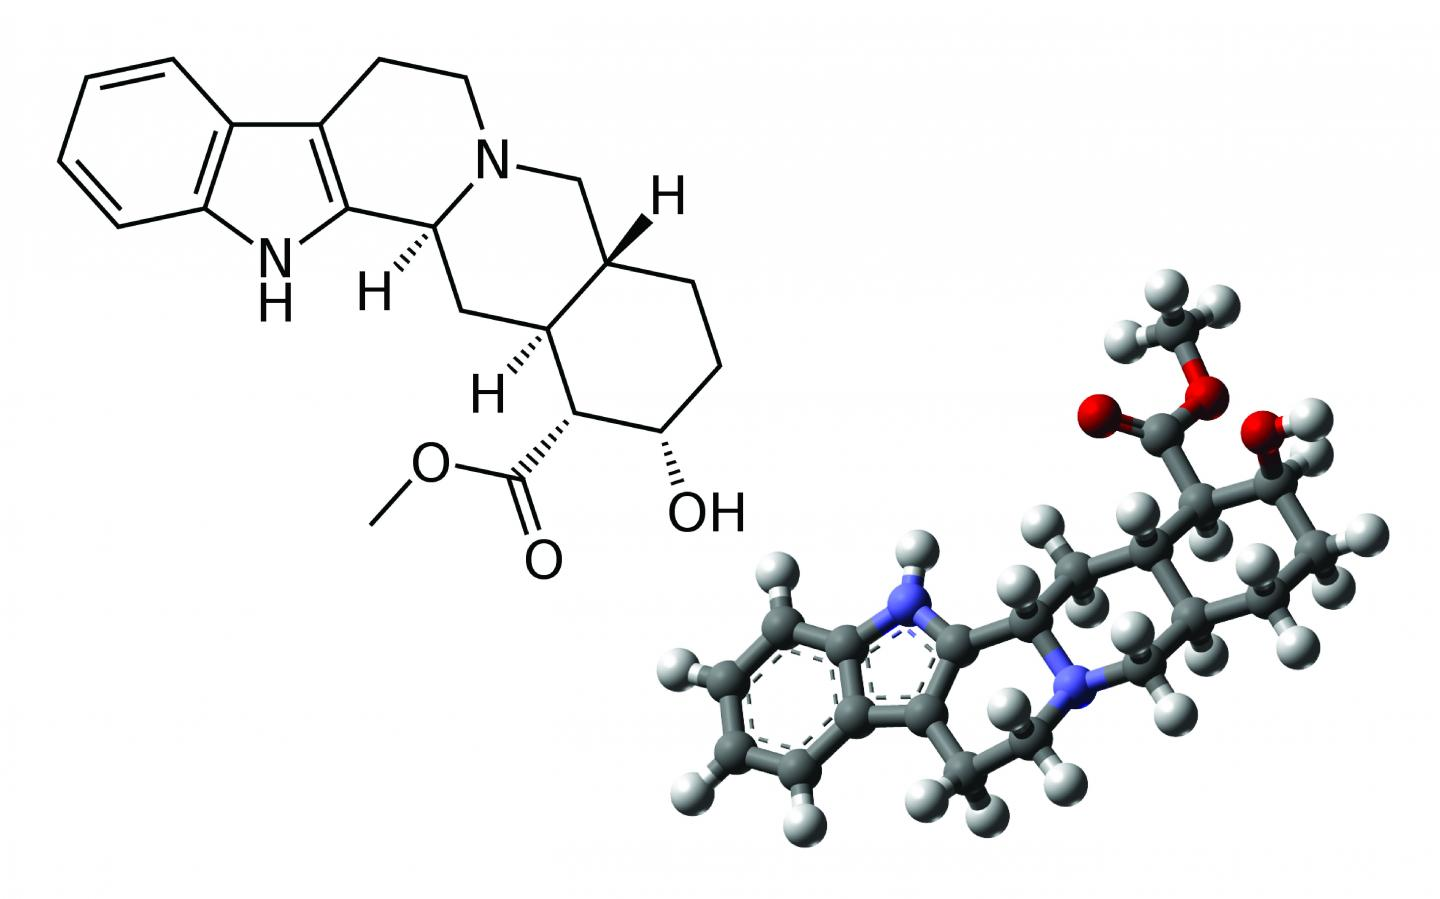 2 D And 3 D Structure Of Yohimbine Image